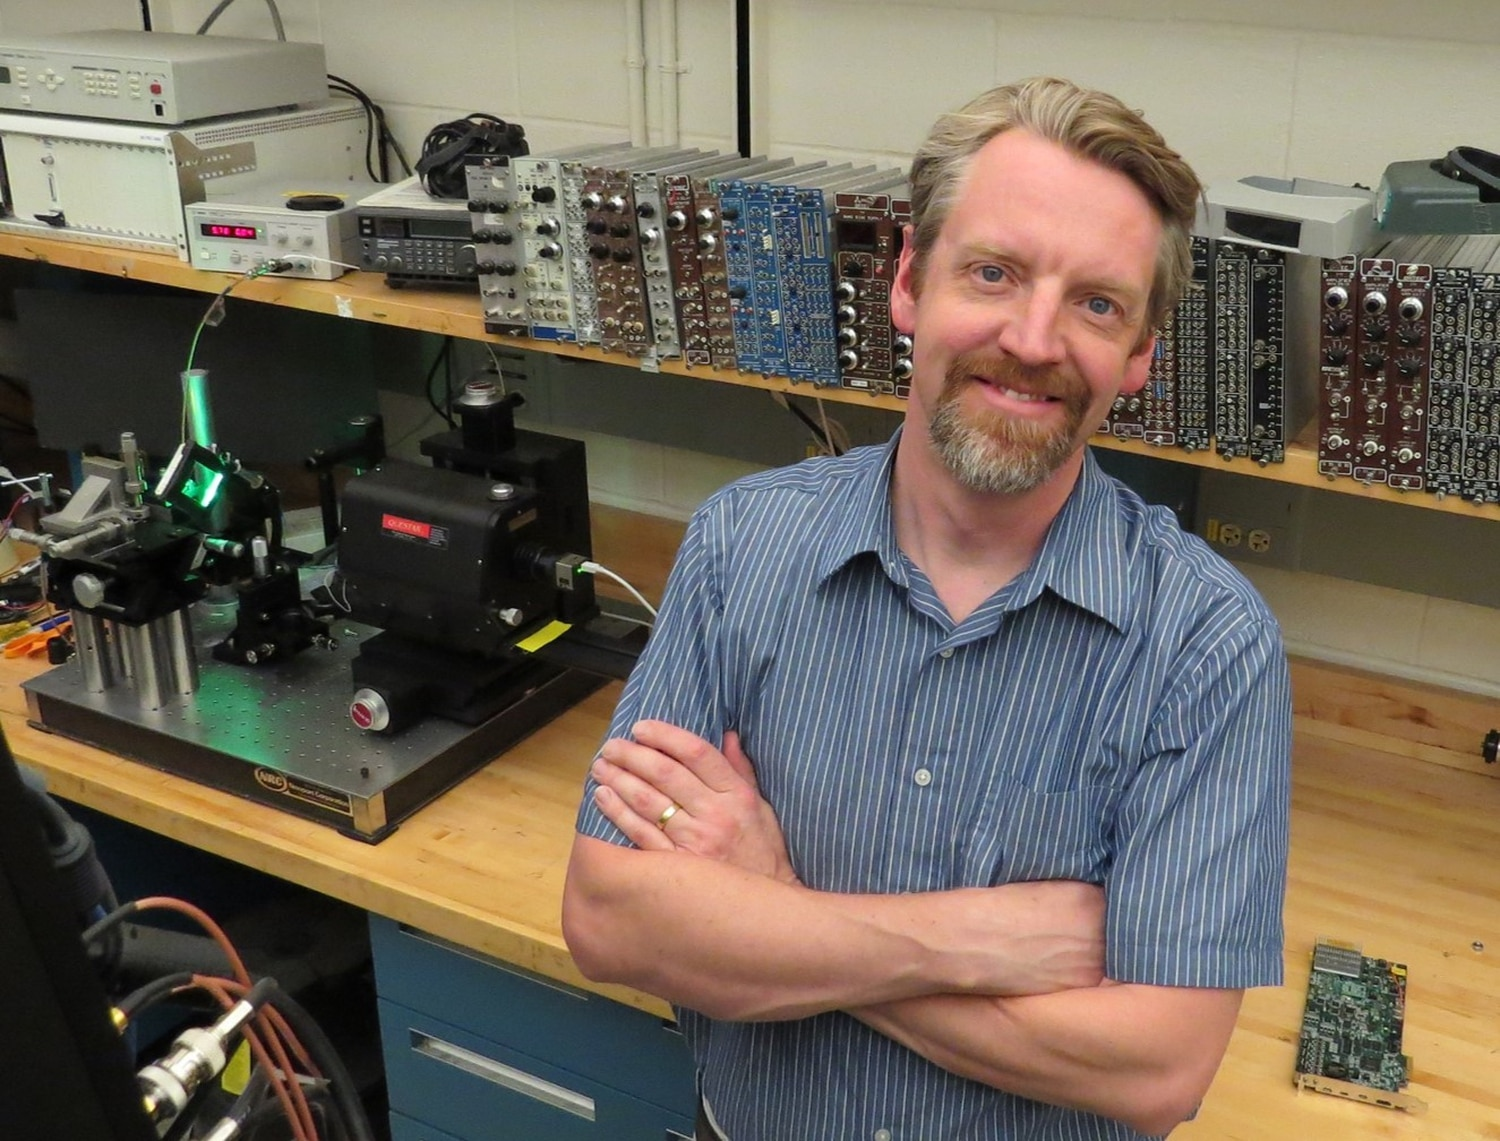 Raymond Newell is a scientist at Los Alamos National Laboratory.